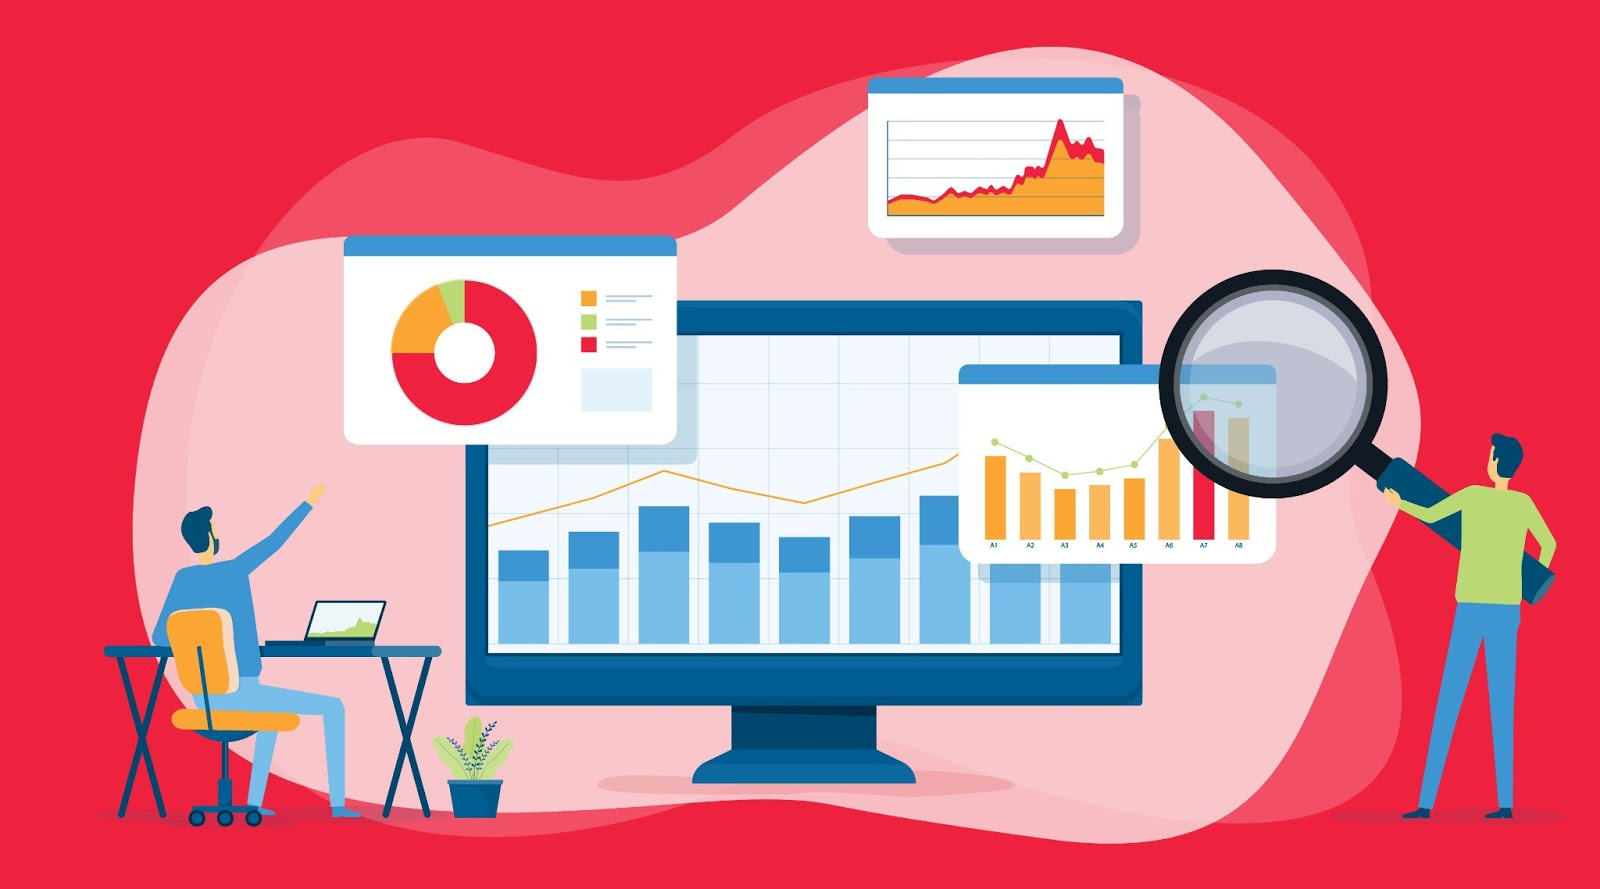 What Contact Center KPIs Are on Your Dashboard?